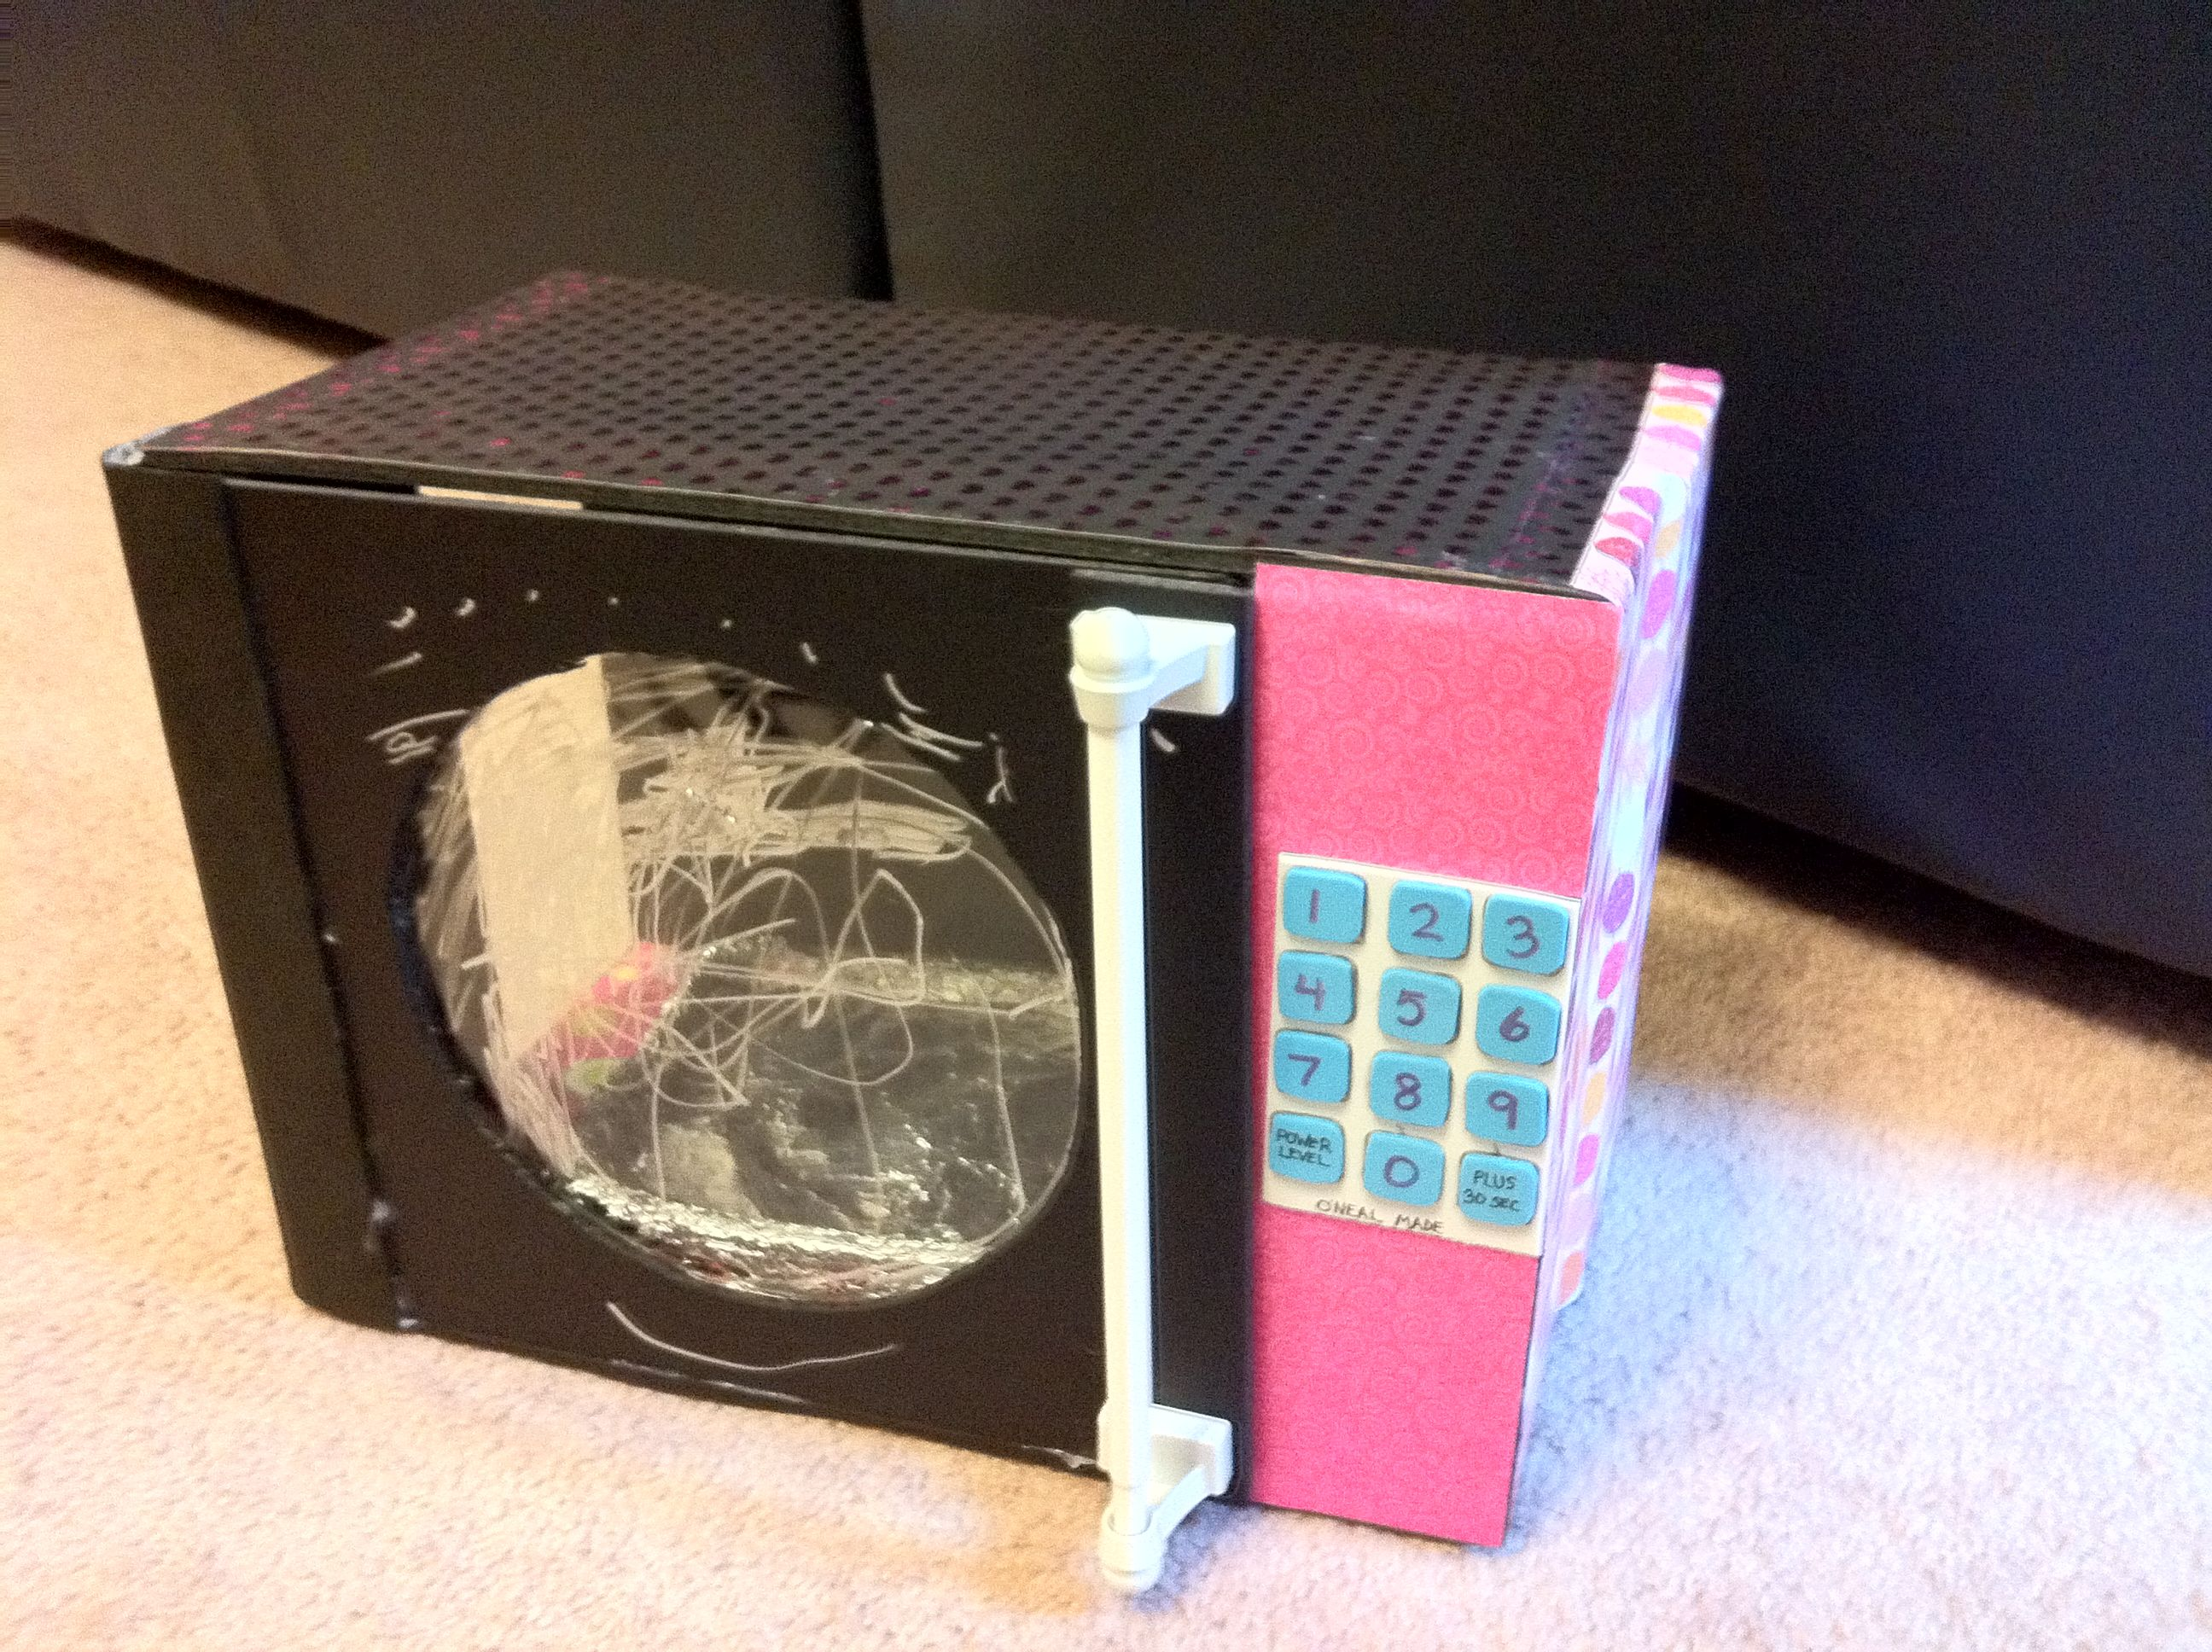 Microwave from foam board, scrapbook paper, curtain rod, and hot glue gun. Left side has an opening so the microwave can be turned on its side and used as a microwave oven.